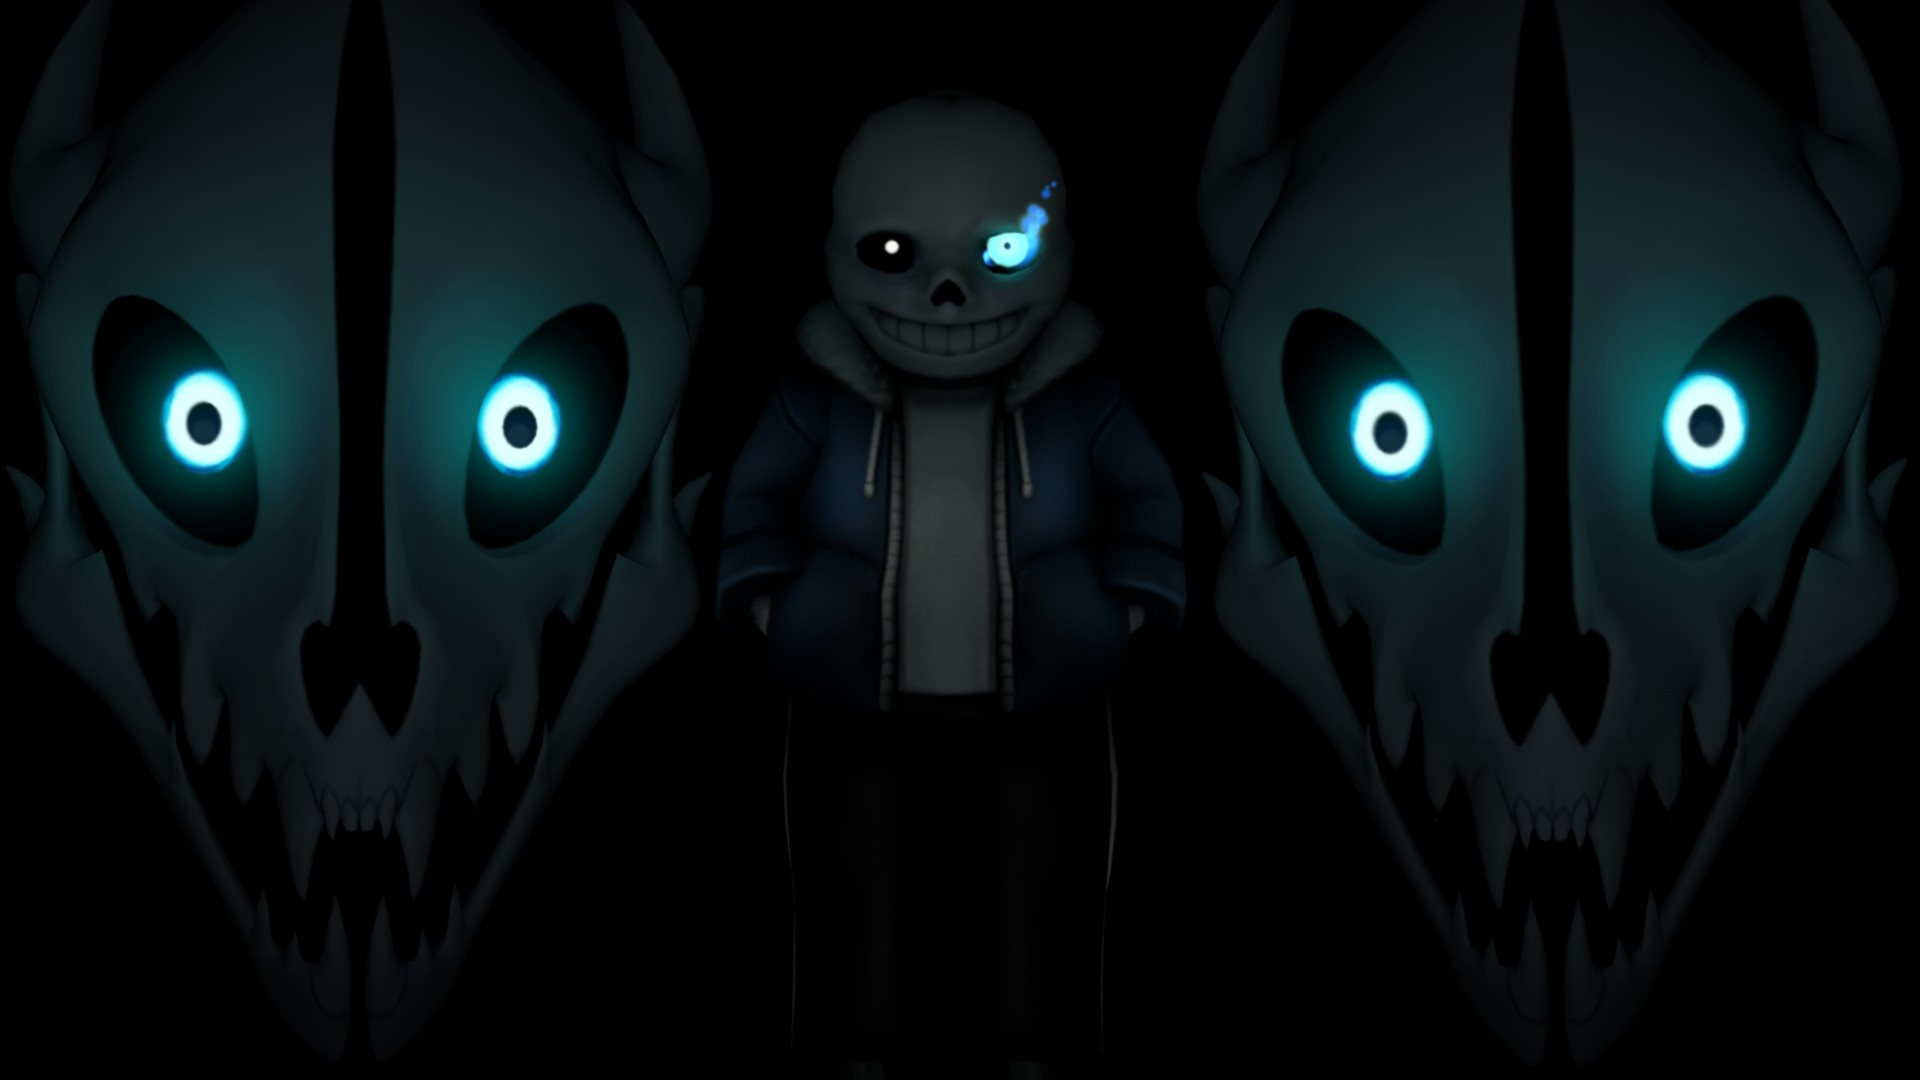 Sans Undertale wallpaper ·① Check out our awesome ...